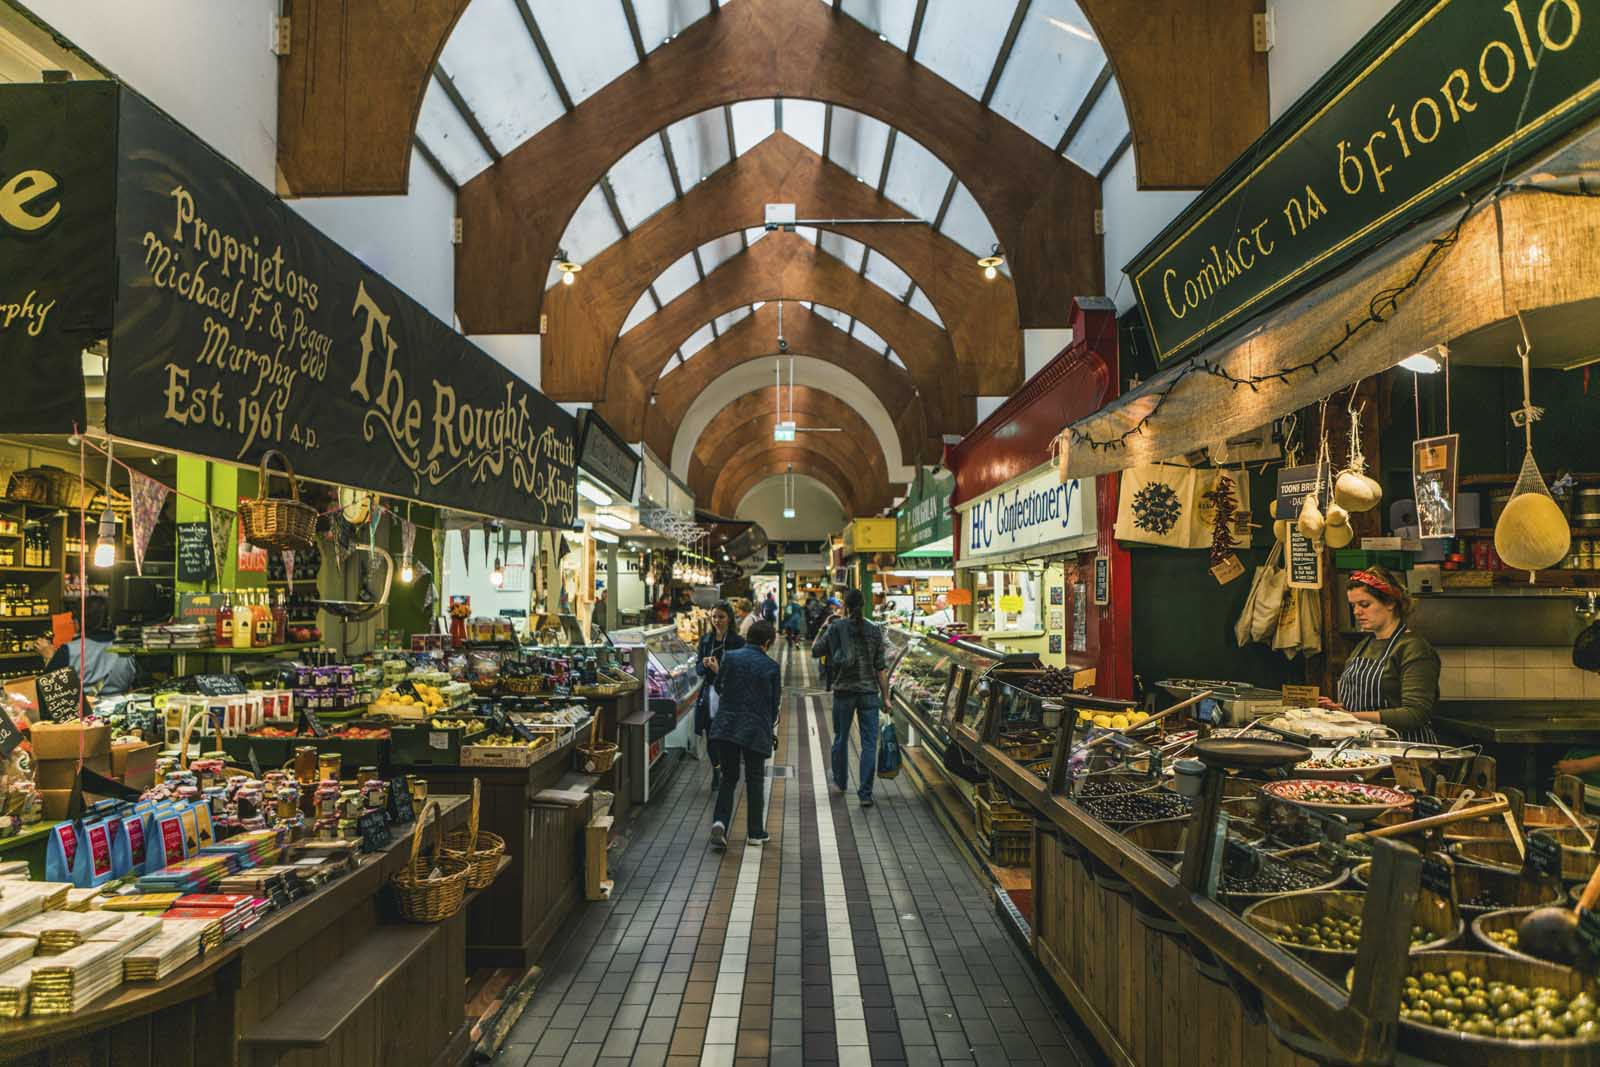 English Market in Cork Ireland